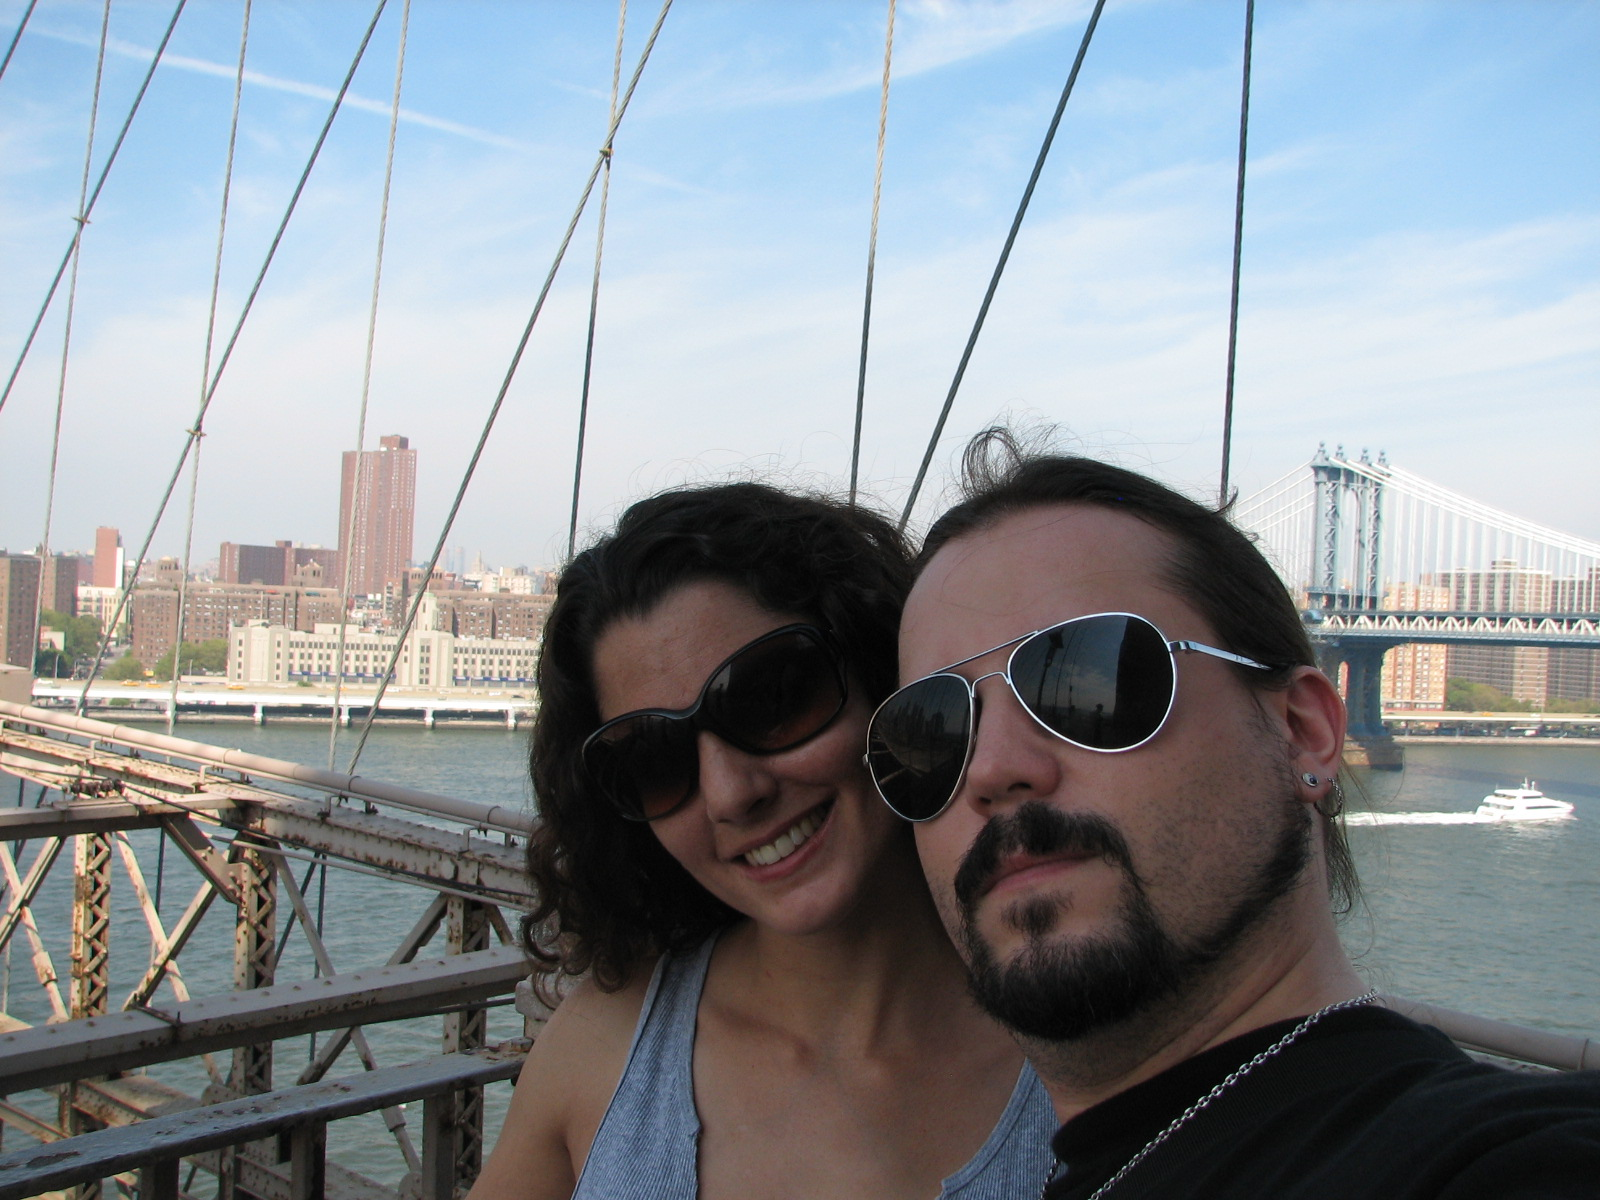 On the Brooklyn Bridge